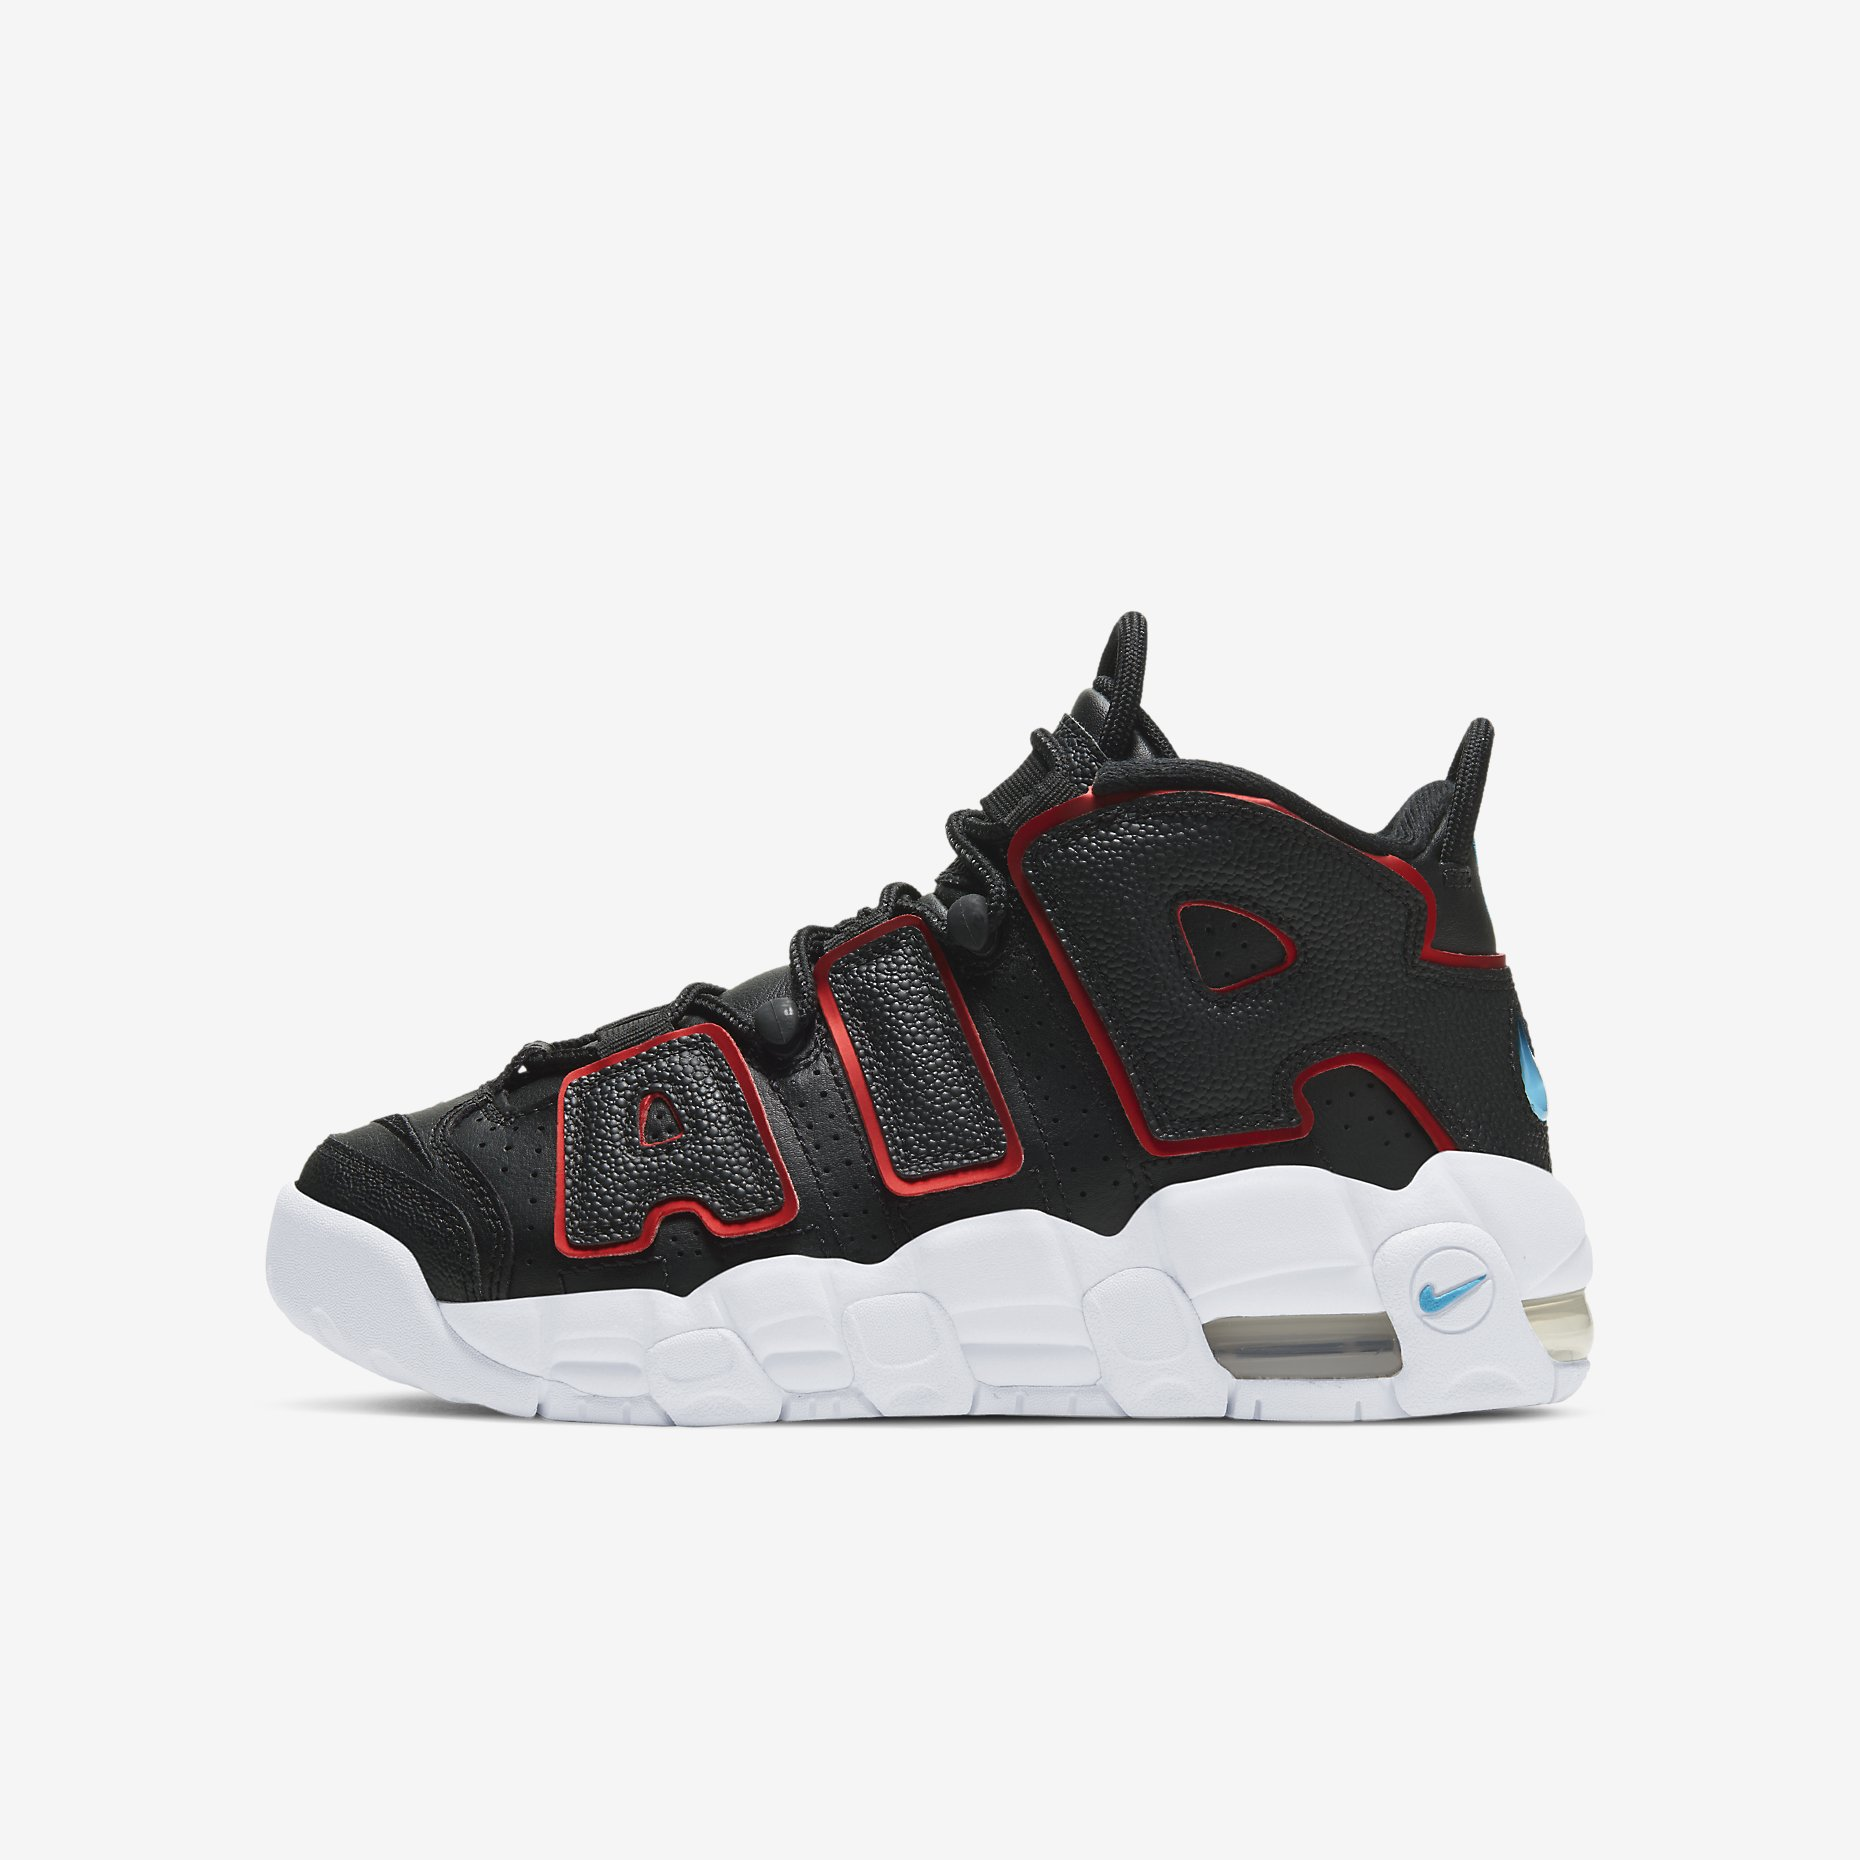 Nike Air More Uptempo GS 'Black/Fusion Red/Light Blue Fury'